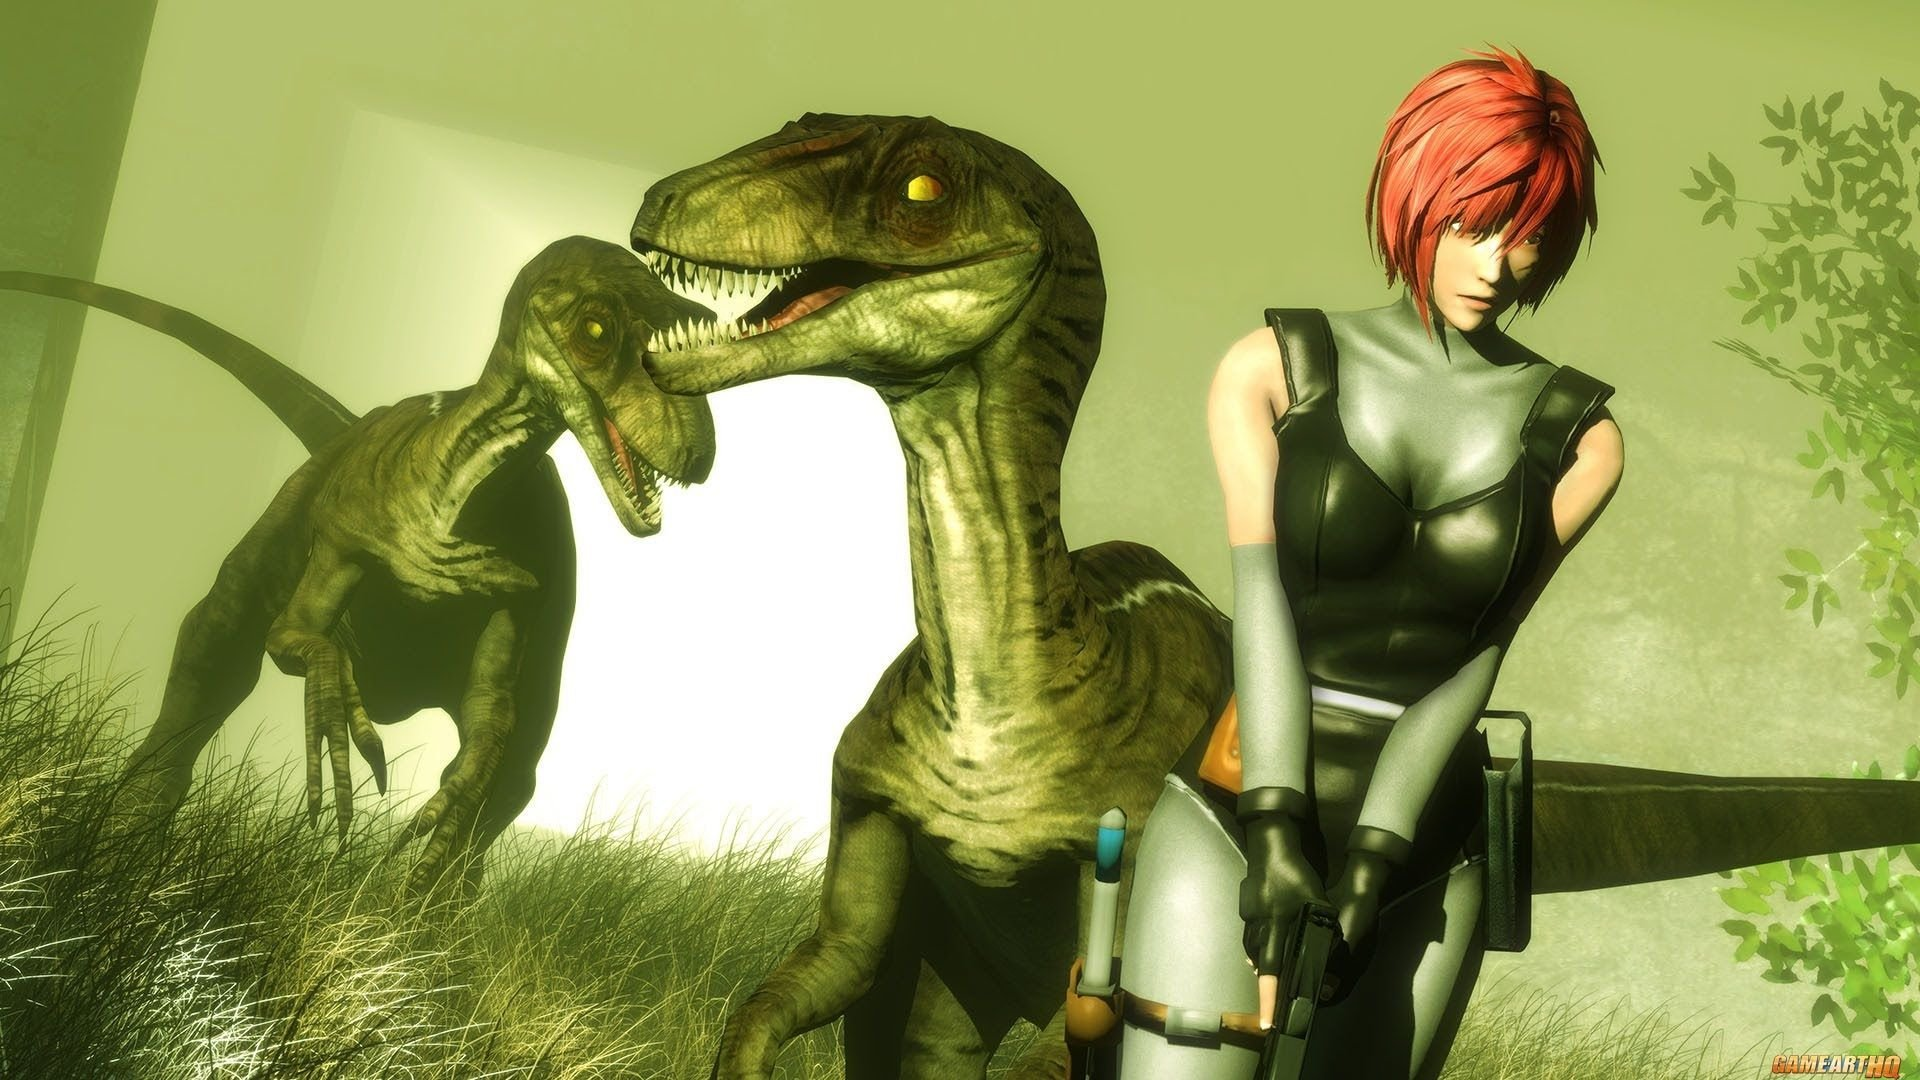 Capcom Gives Dino Crisis Fans Hope By Promising to 'Revive Dormant IPs'